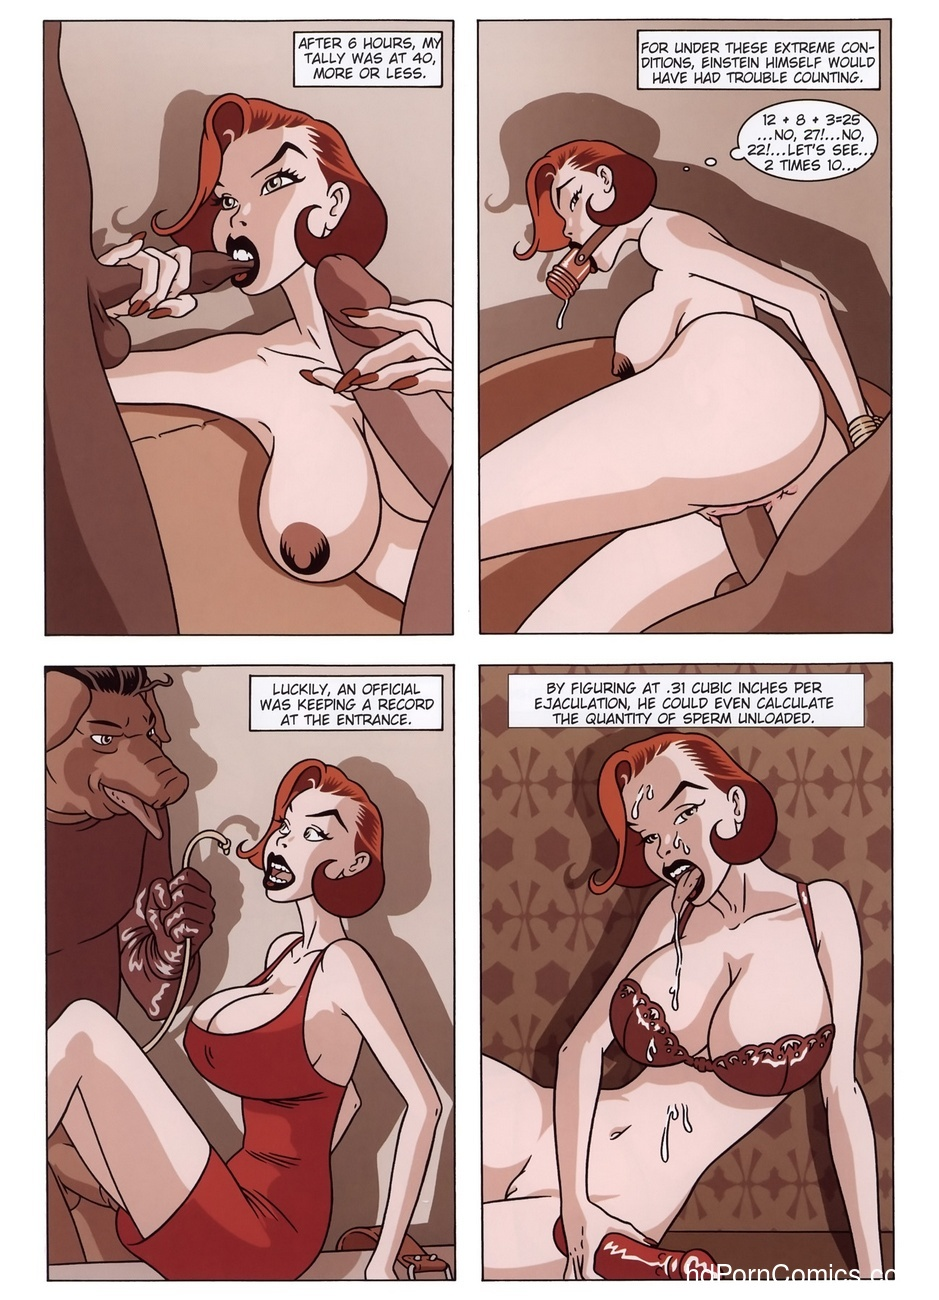 The 110 Blowjobs 16 free sex comic